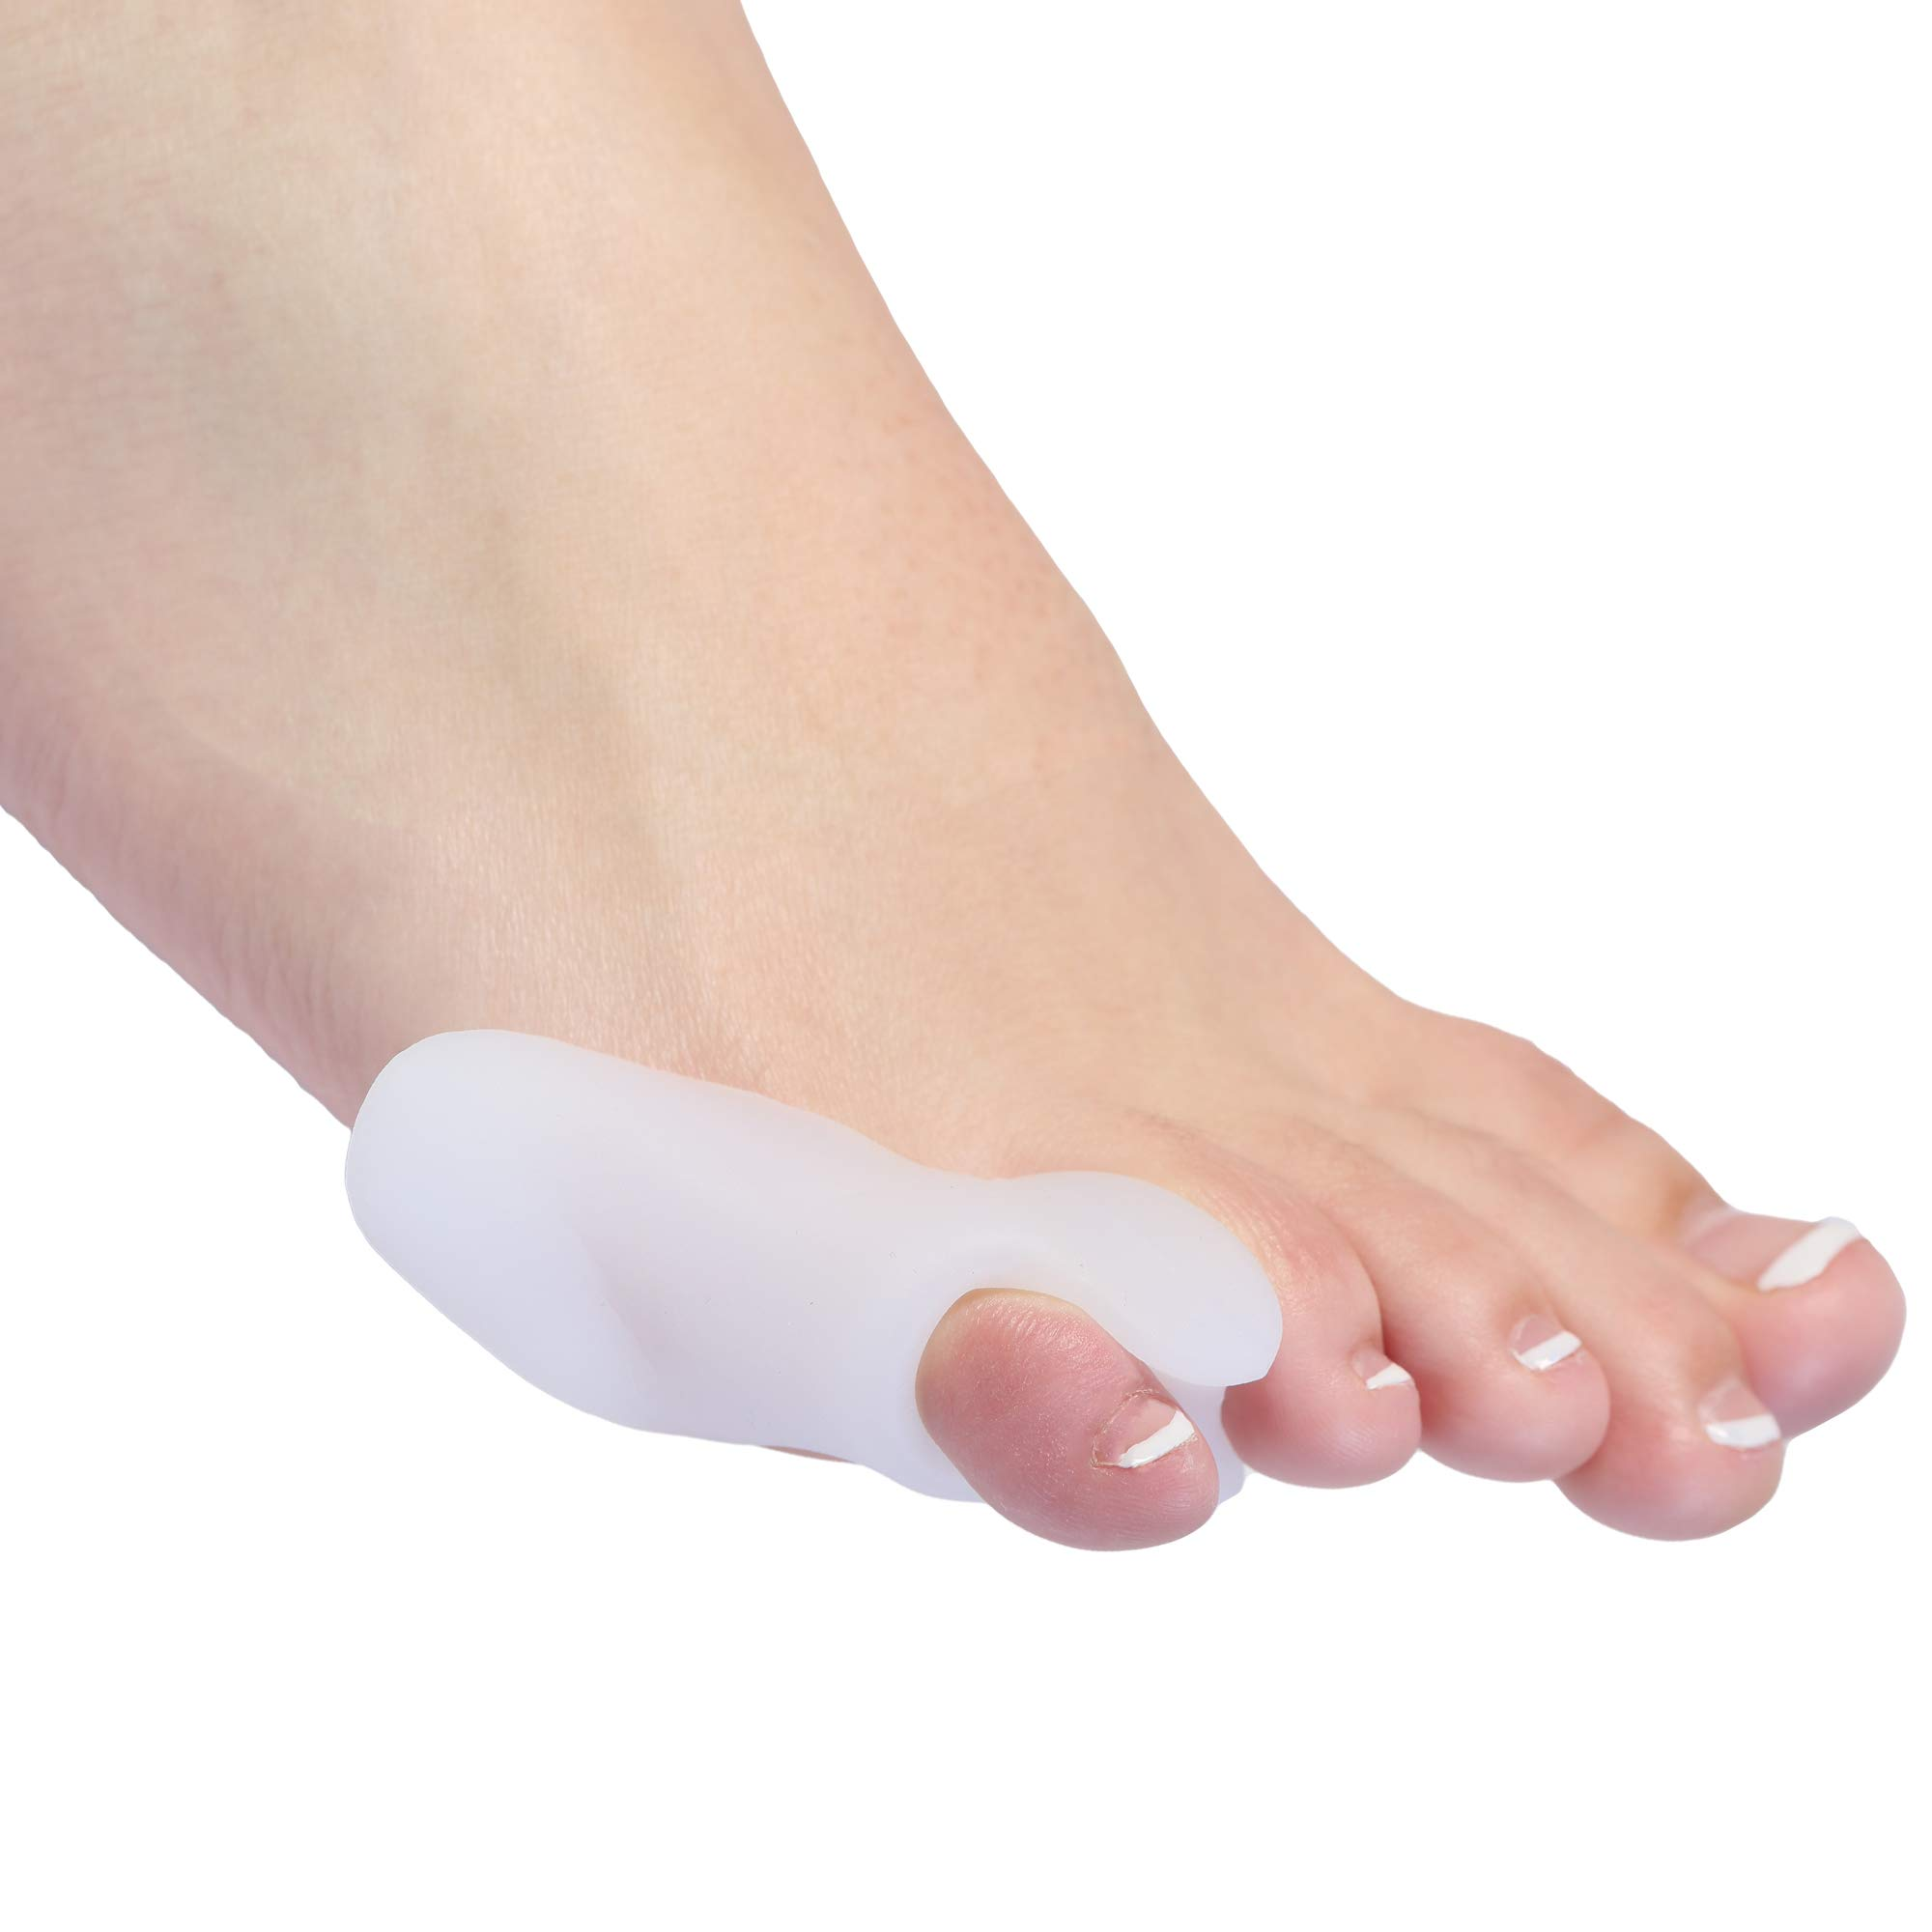 Bunionette Corrector Pads - 4-Pack of 2 Small Pinky Toe Tailors Bunion Pain Relief Protectors with Premium Gel Cushions Plus 2 Toe Separators - Best Foot Orthotics and Toe Straightener Sleeve. Unisex